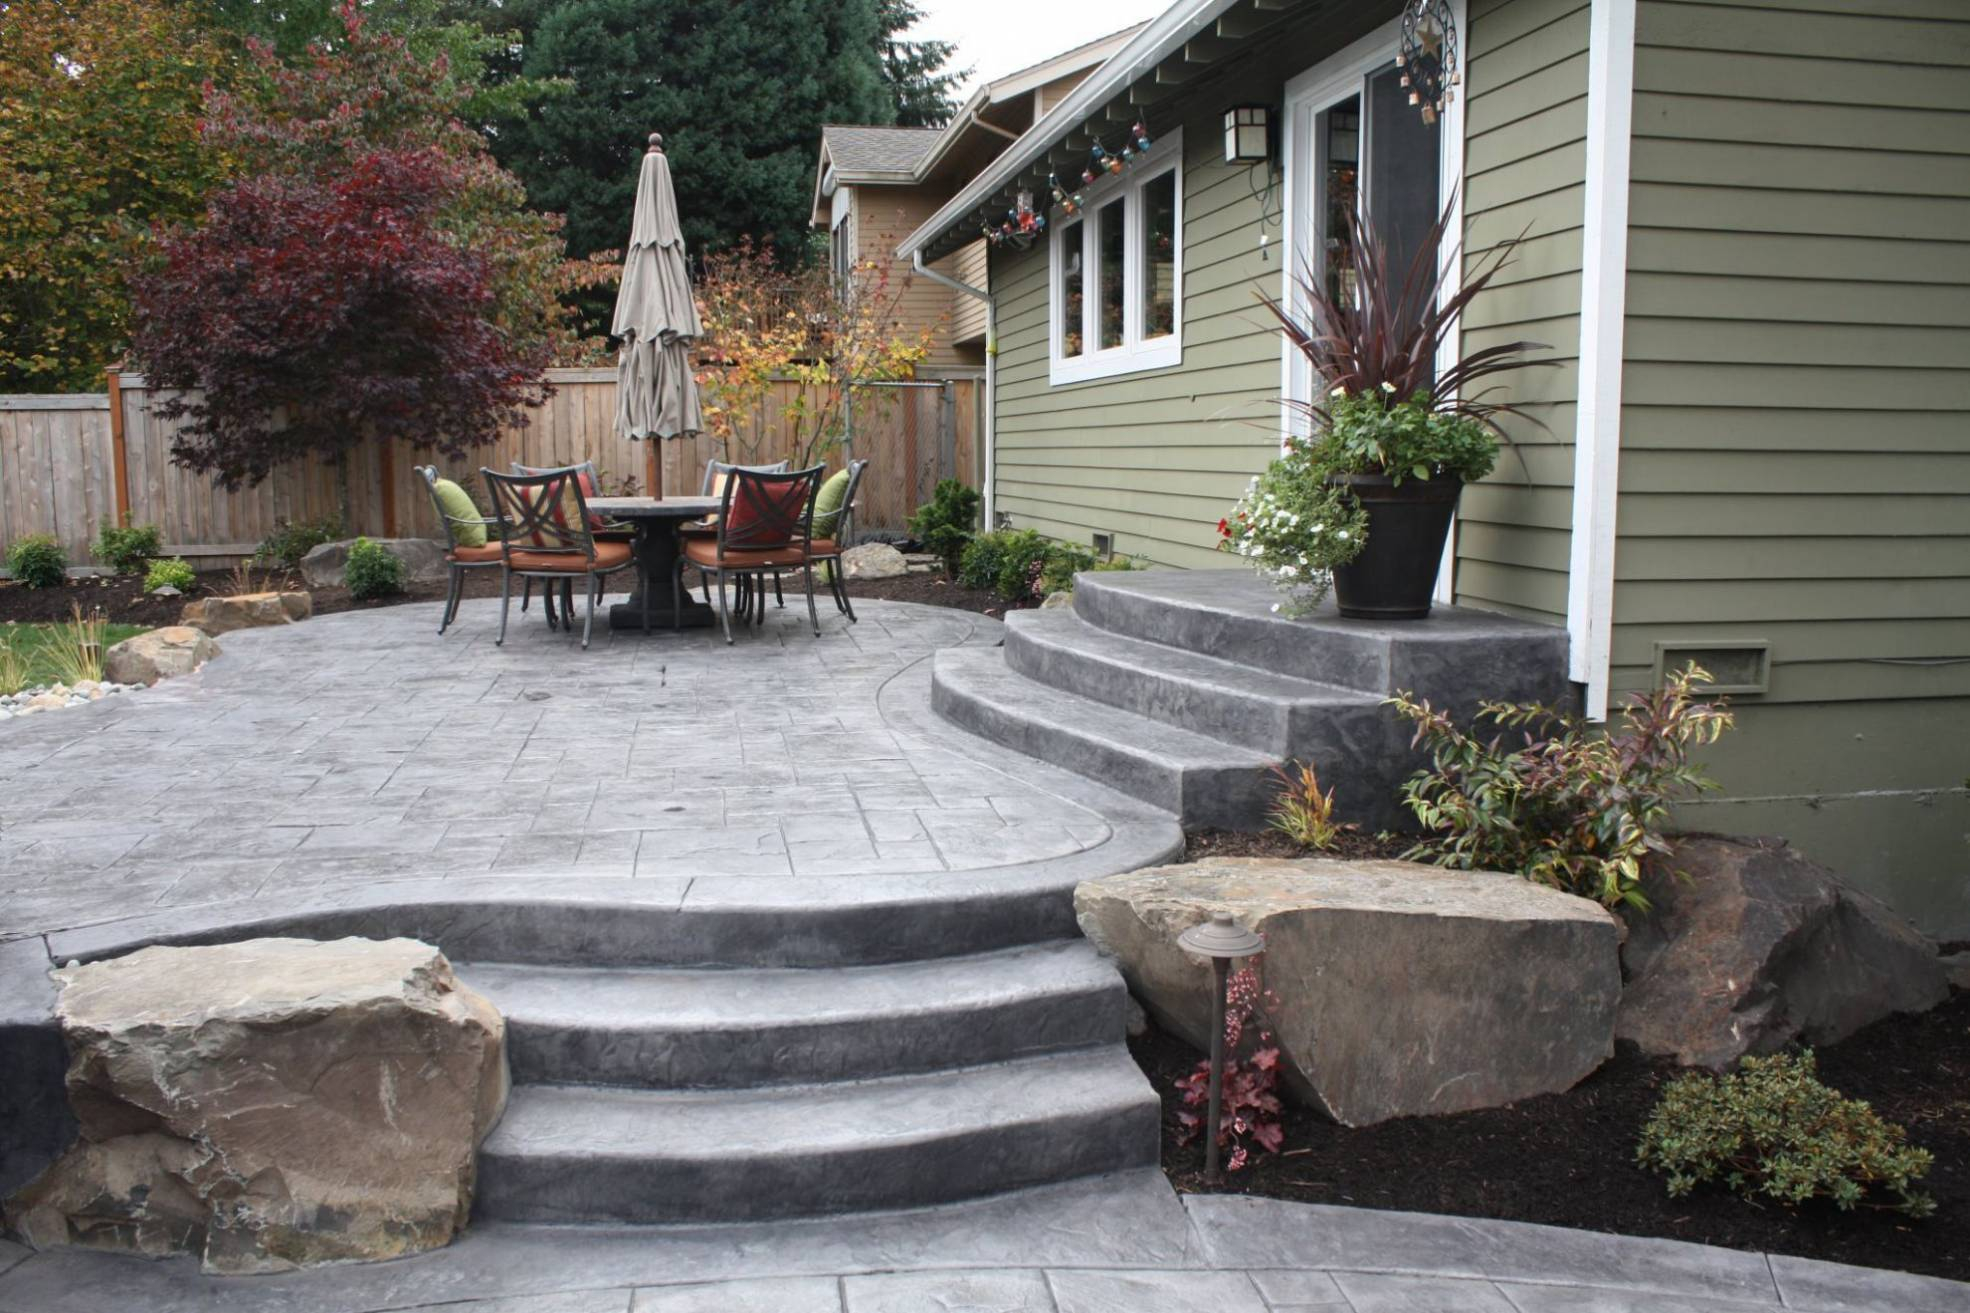 Backyard Stamped Concrete Patio Ideas Air Home Products Concrete intended for Backyard Steps Ideas